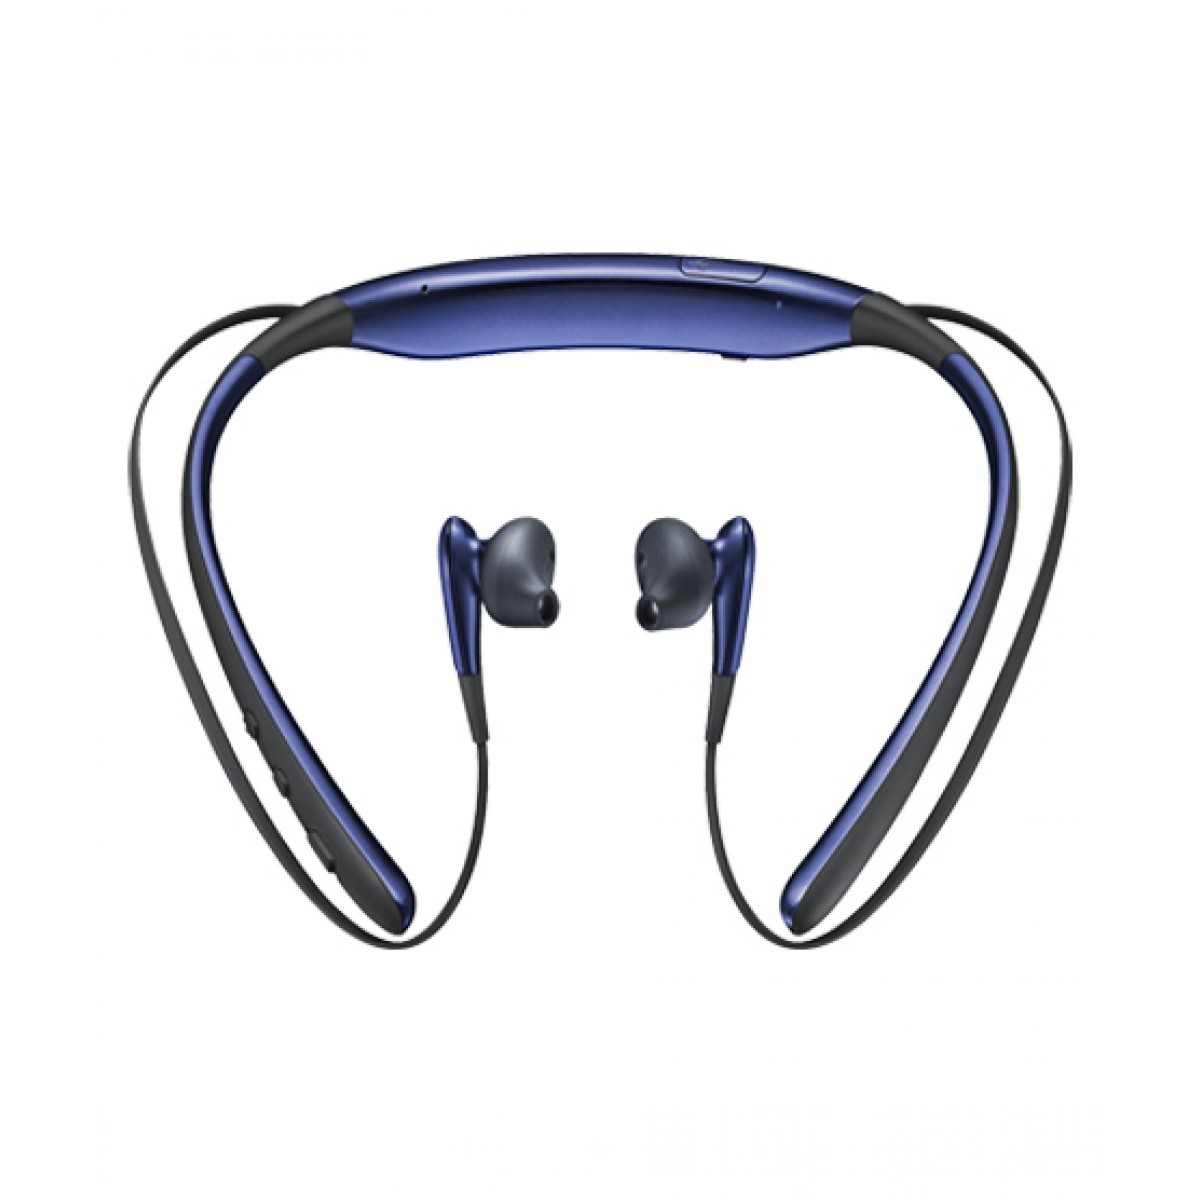 Samsung Level U Headphones Price In Pakistan Buy Samsung Wireless In Ear Headphones Black Sapphire Ishopping Pk